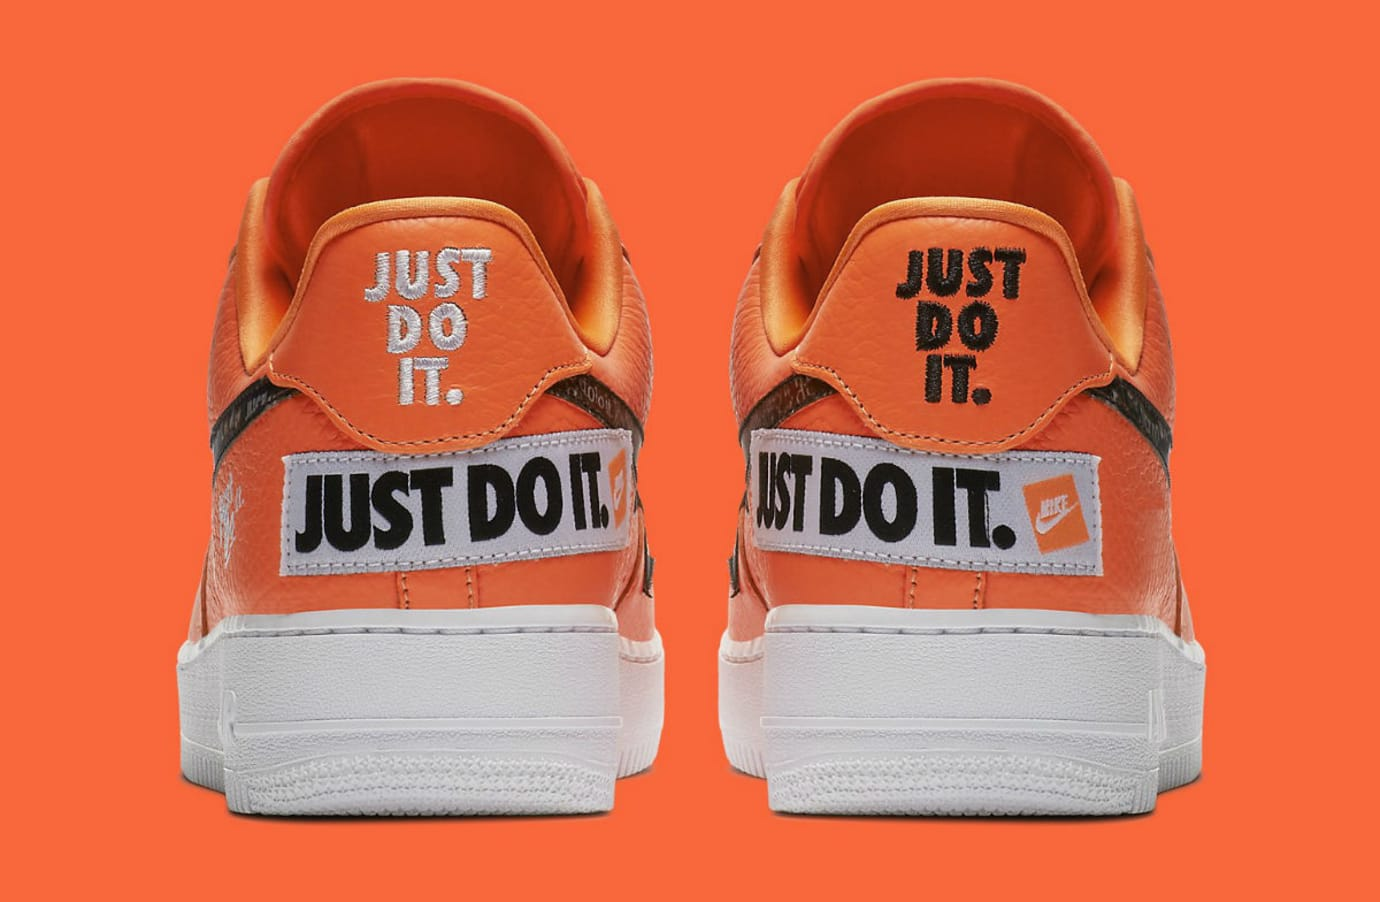 Nike Air Force 1 Low Just Do It Orange Release Date AR7719-800 Heel